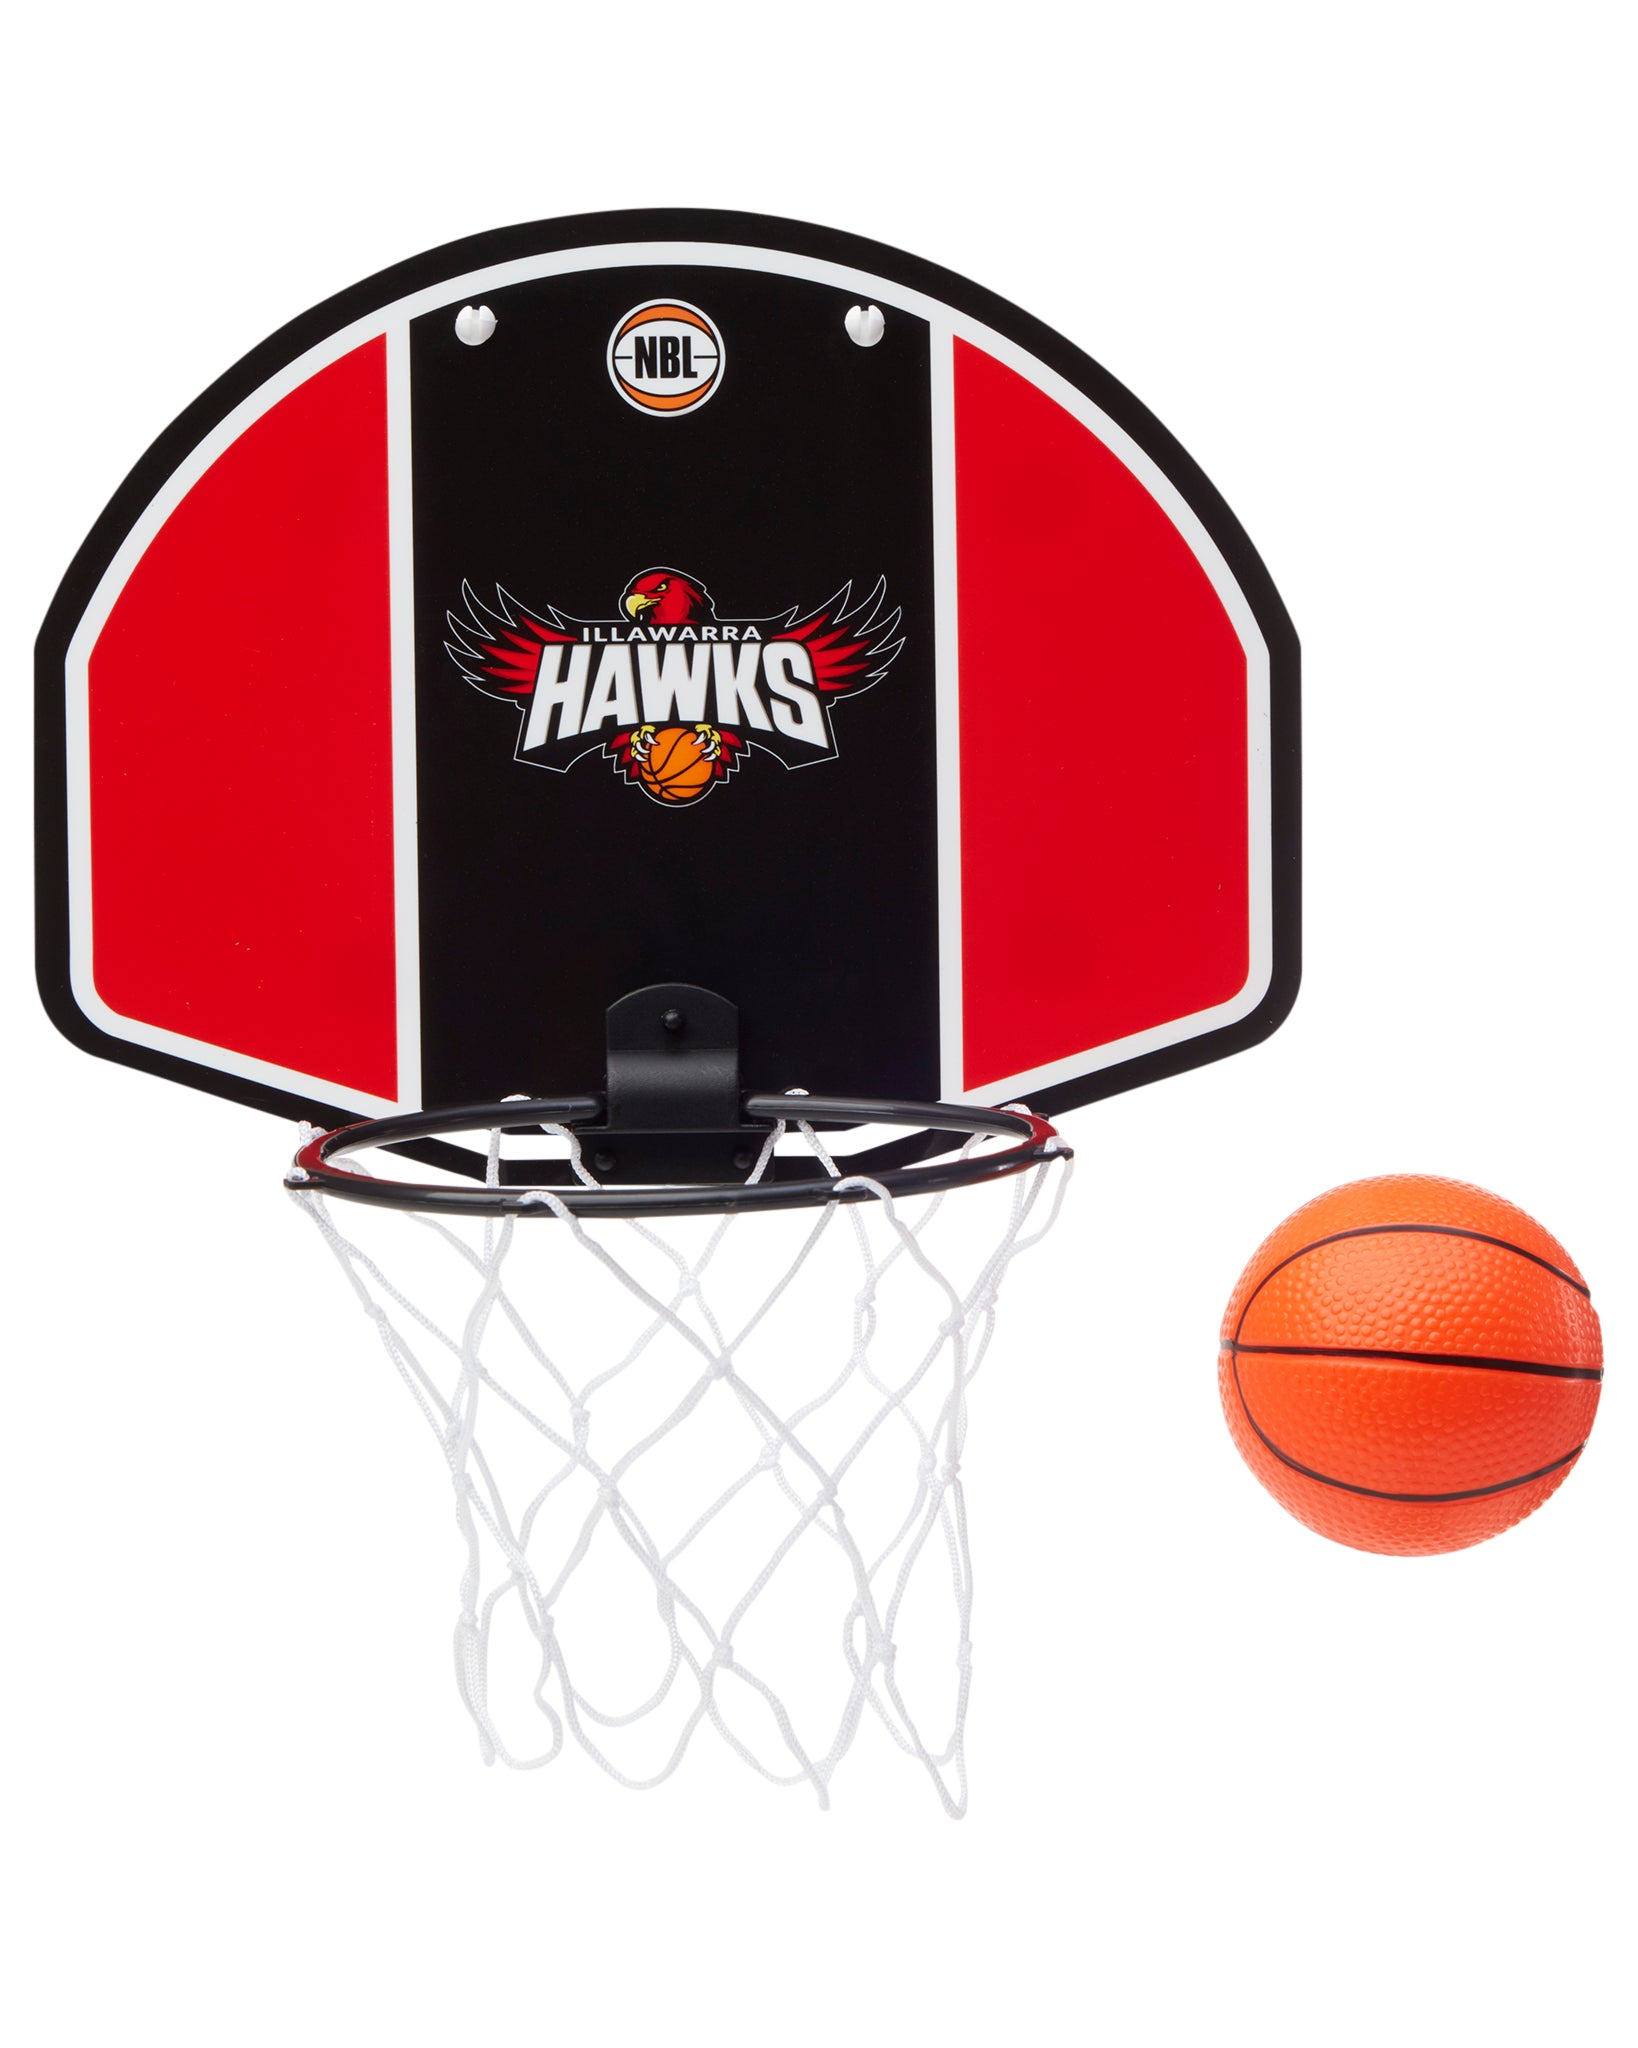 Illawarra Hawks 19/20 Official NBL Mini Basketball Backboard